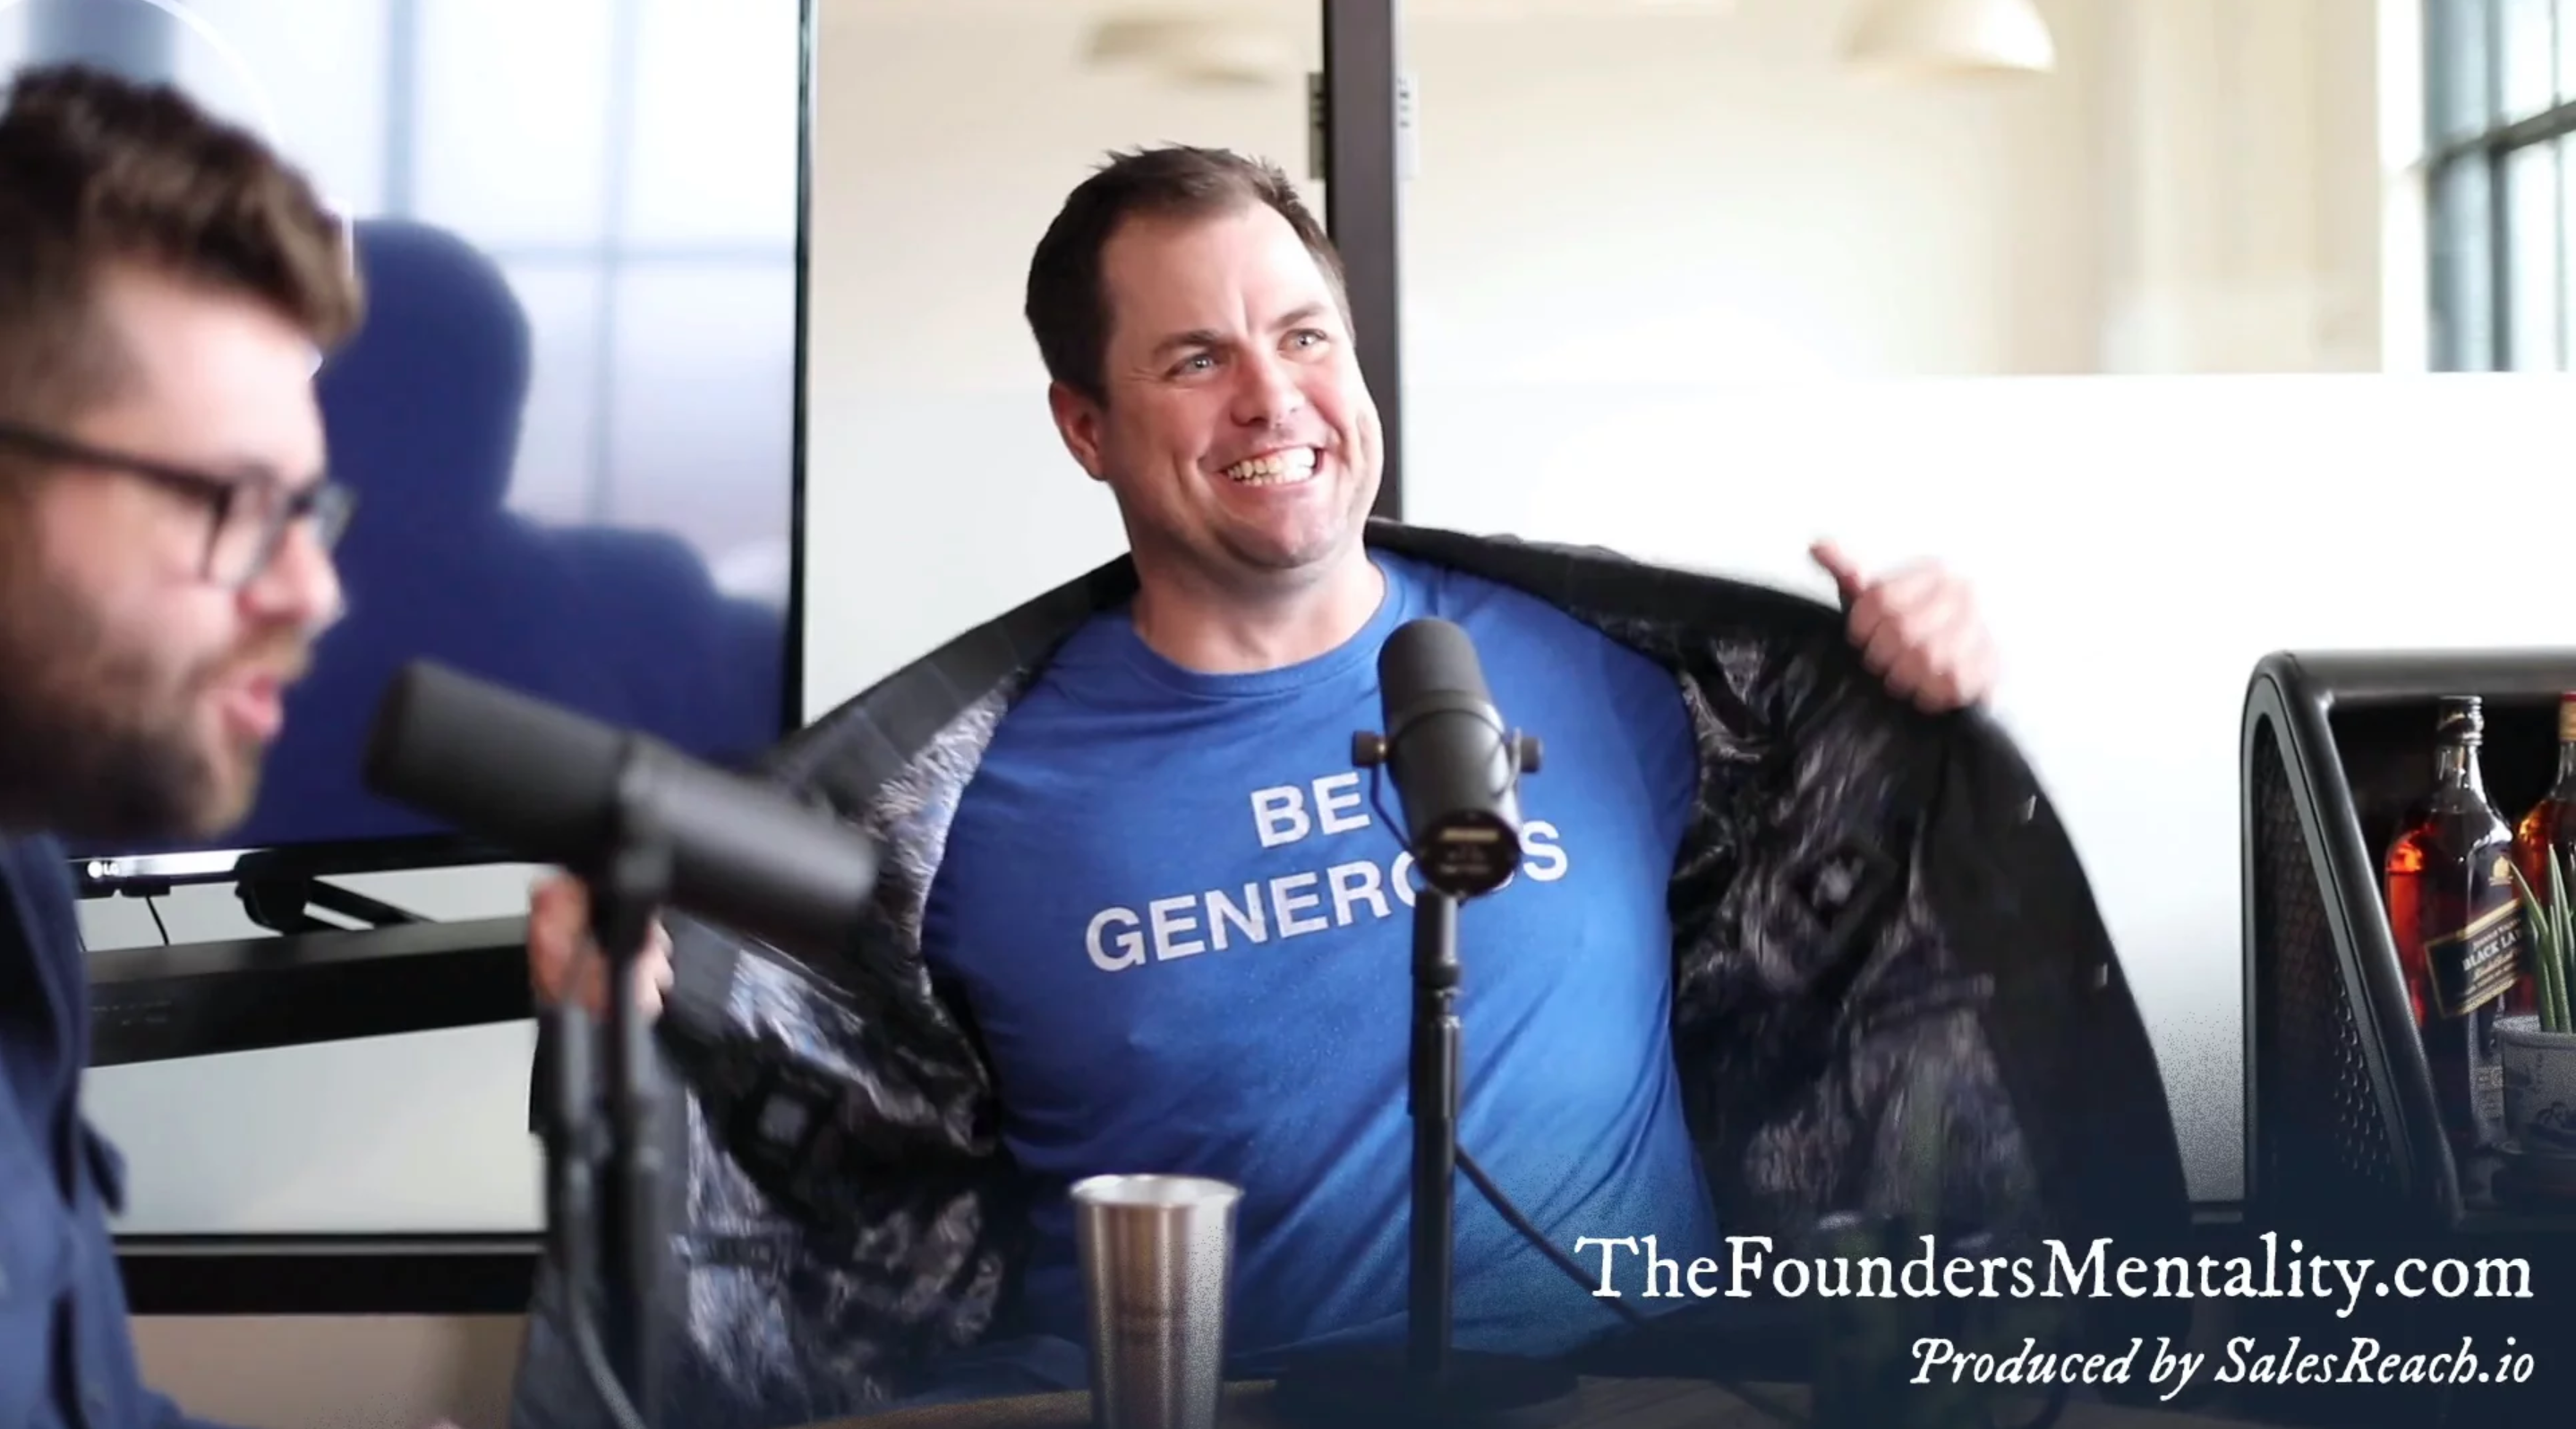 Kris Lindahl on The Founders' Mentality